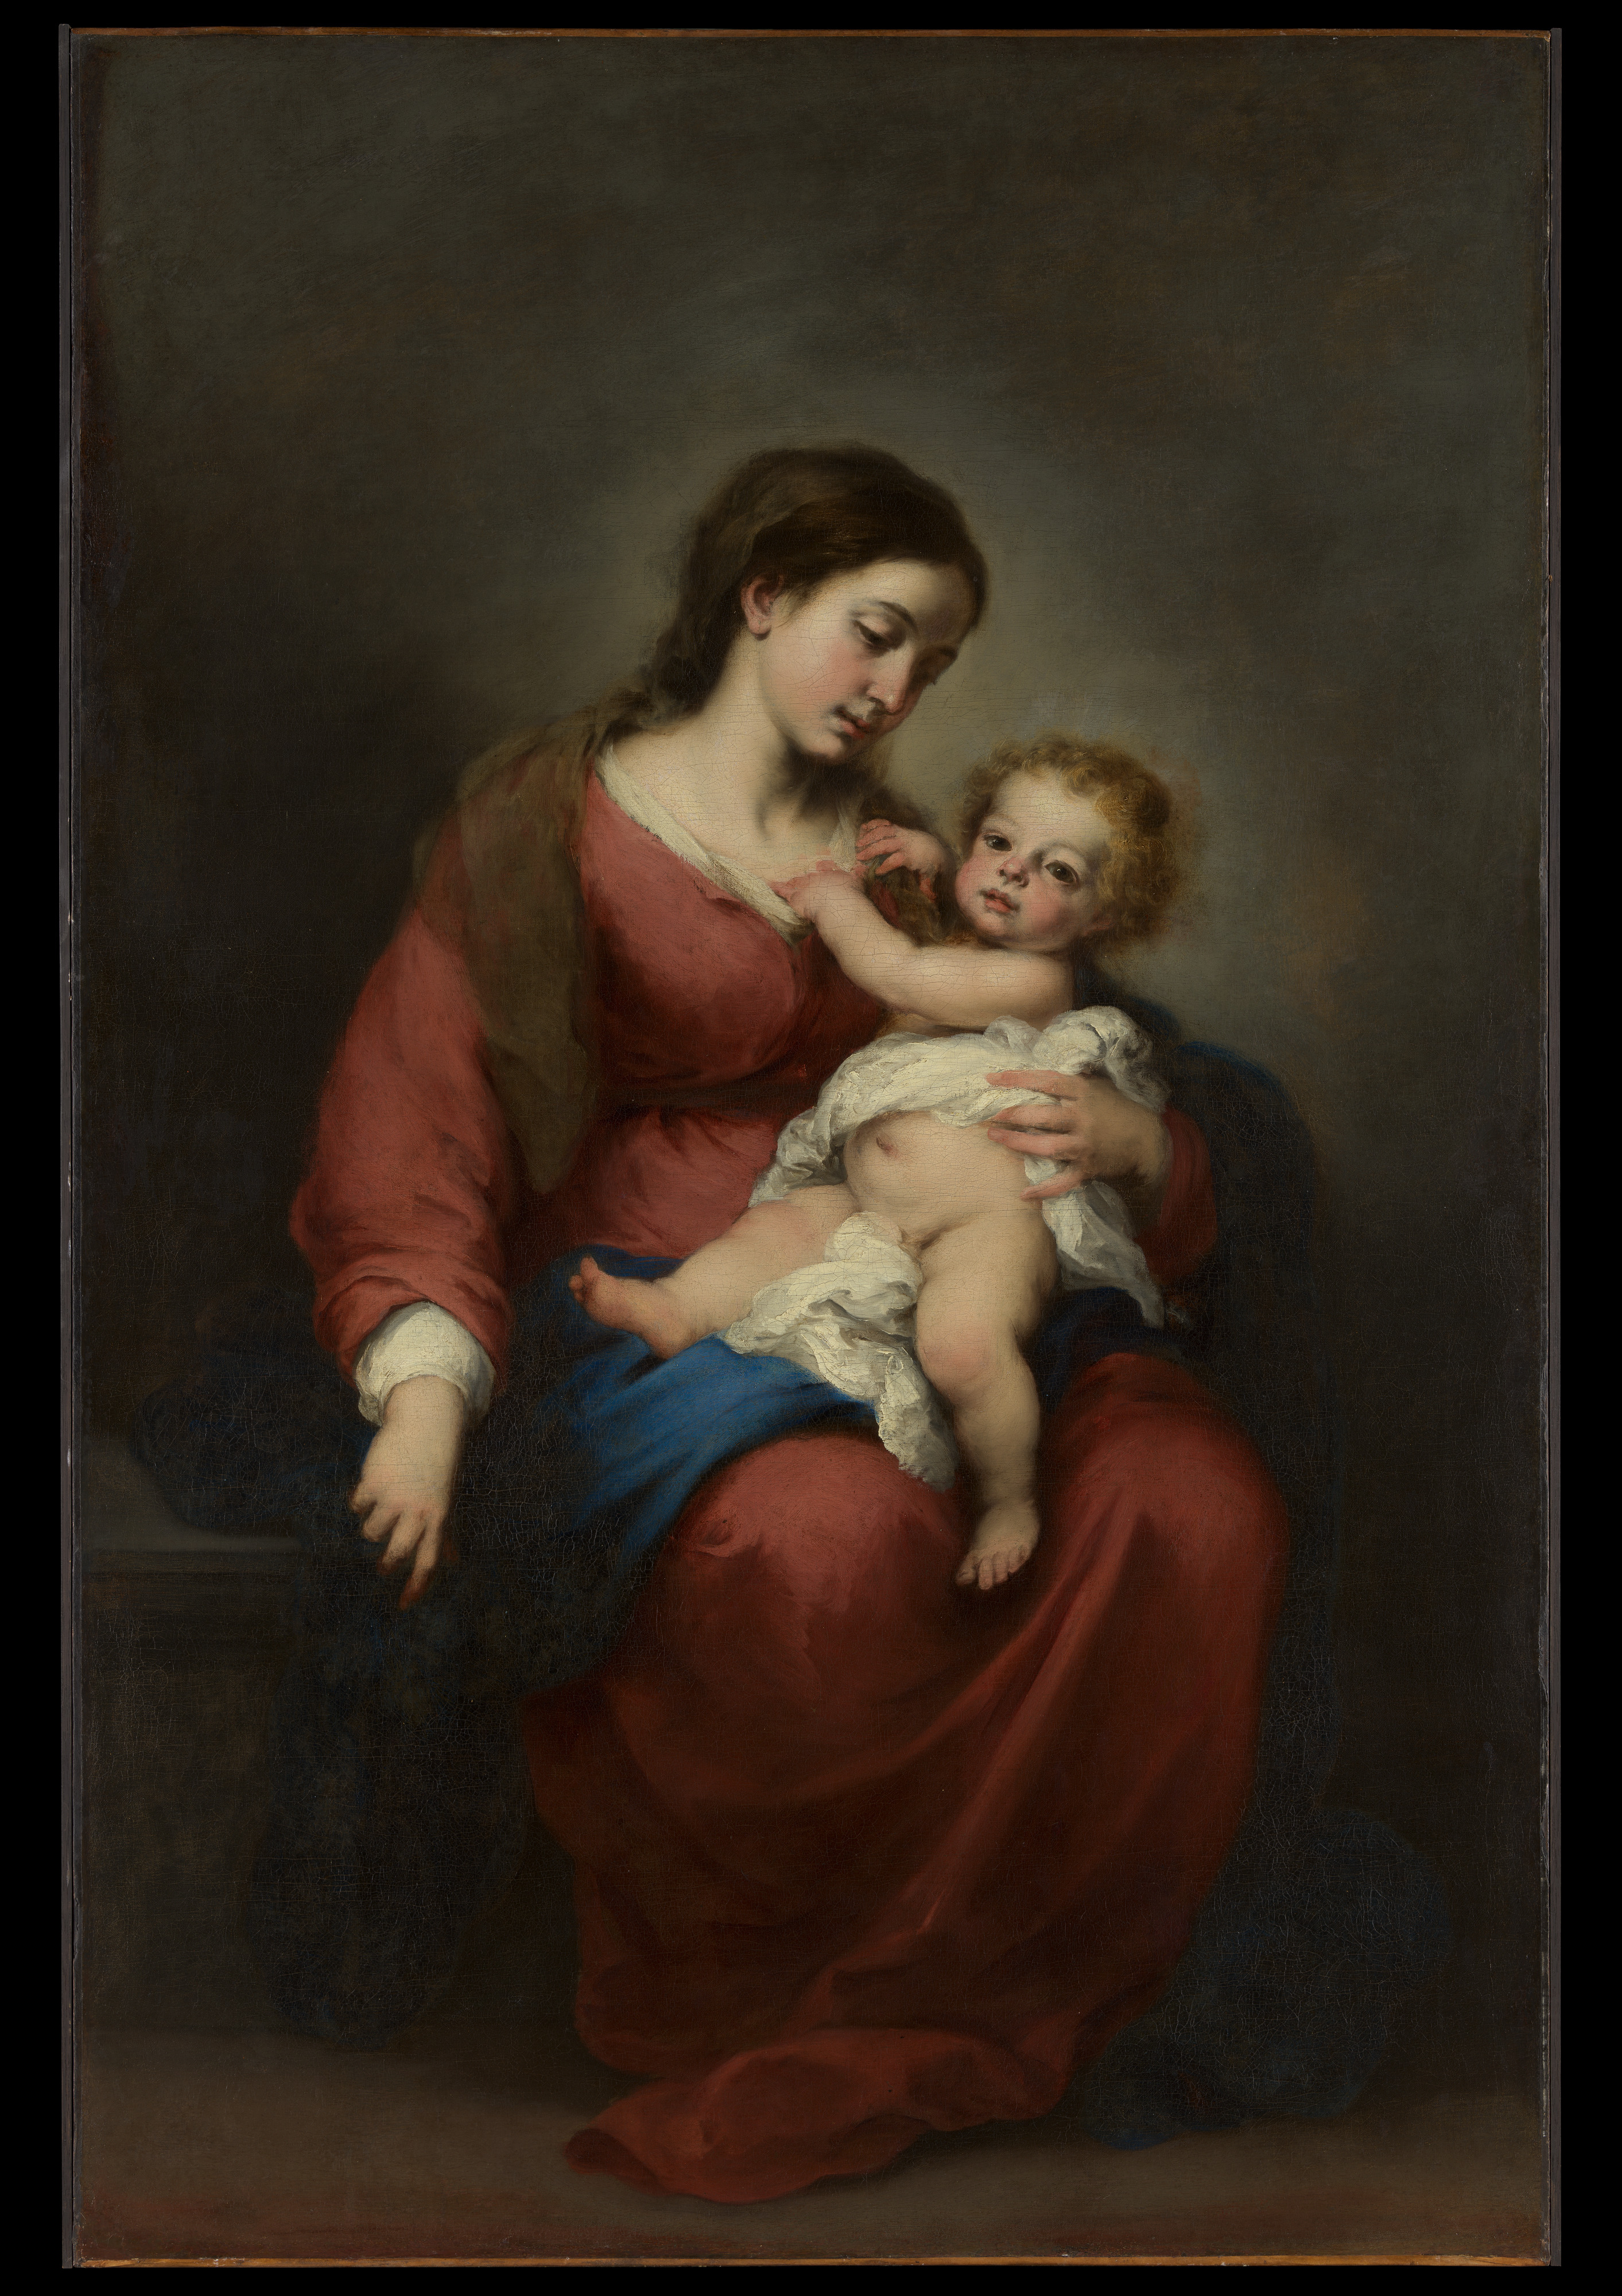 Virgin and Child, Bartolomé Estebán Murillo, ca. 1670–72, Spanish, Oil on canvas, Rogers Fund, 1943. (The Metropolitan Museum of Art) At the height of the Baroque era in the late 1600s, Bartolomé Esteban Murillo's charming paintings of ethereal, sacred images of icons helped create the vehicle towards the divine. His Rubenesque paintings, crafted with unparallelled skill, were coveted by royalty throughout Europe. He was one of the premiere artists in his day. The modest and charitable Murillo however, had spent a great deal of time invested in his hometown of Seville which had been ravaged by plague and starvation trying to help those in need. His paintings of orphaned children tried to awaken sympathy for the less fortunate. Unfortunately for Esteban Murillo himself, after the emergence of the Modernist art movements that swept through Western Europe, his paintings and the subject matter he portrayed fell so far out of fashion, that they had been mocked and denigraded by art critics and the public. His legacy had been buried and nearly forgotten along with thousands of other artists and their exquisite works.